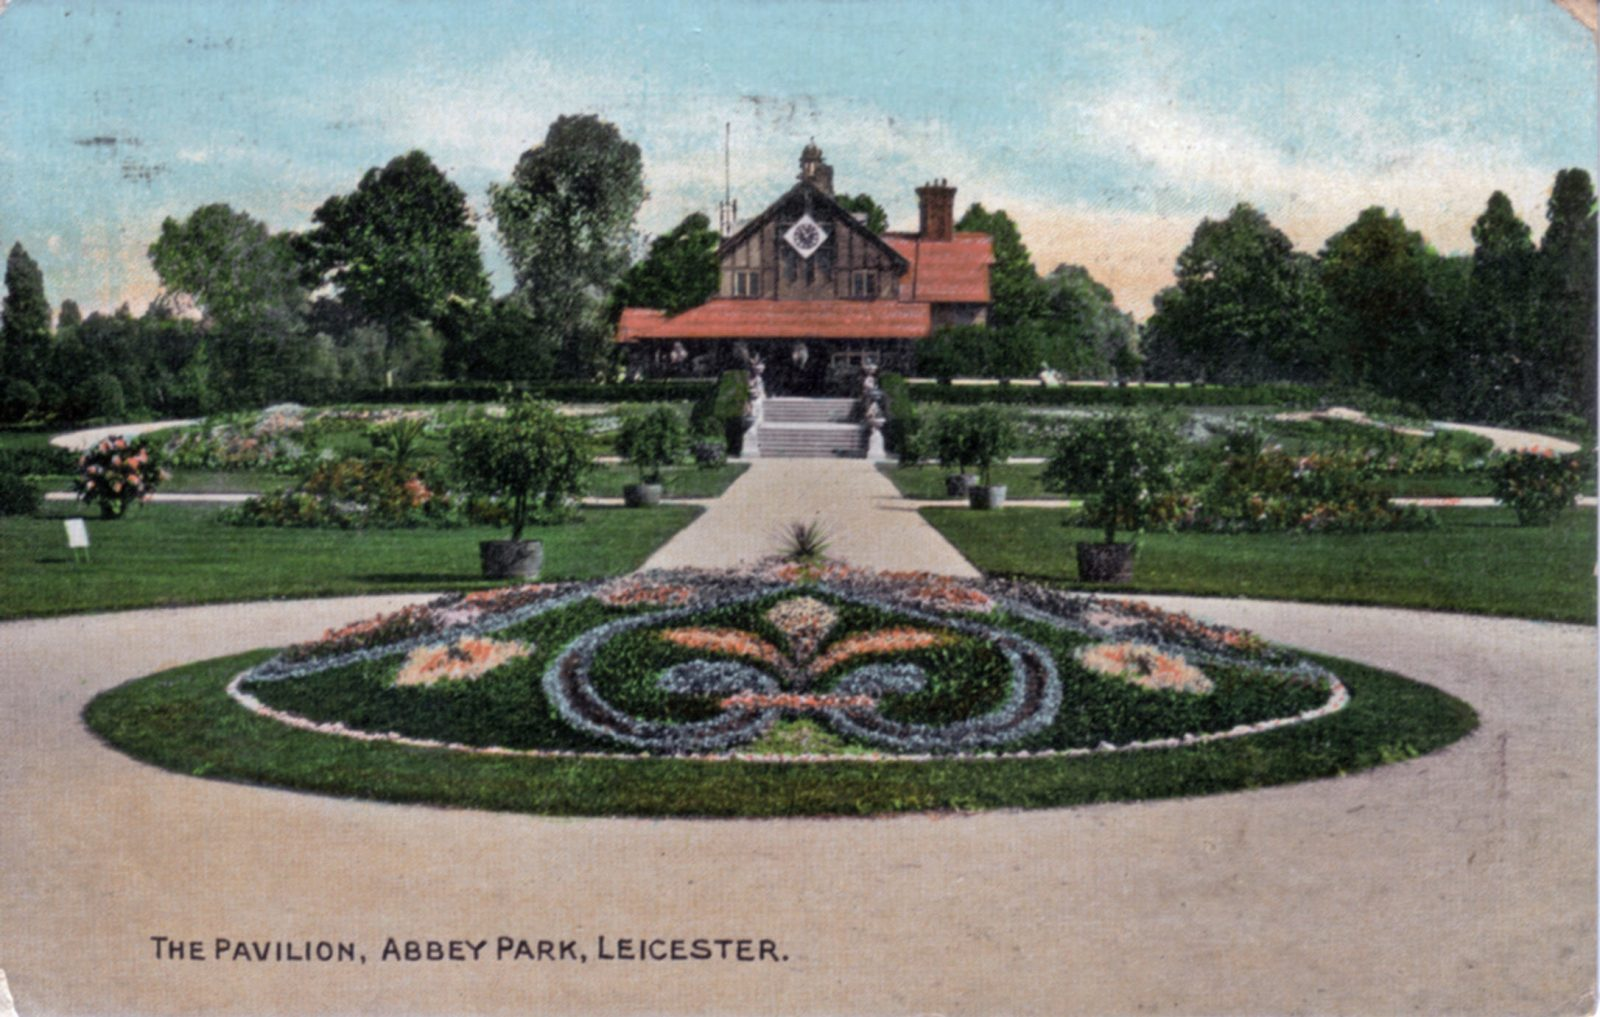 Abbey Park, Leicester. 1901-1920: Pavilion and carpet bedding. Franked 1910 (File:1288)